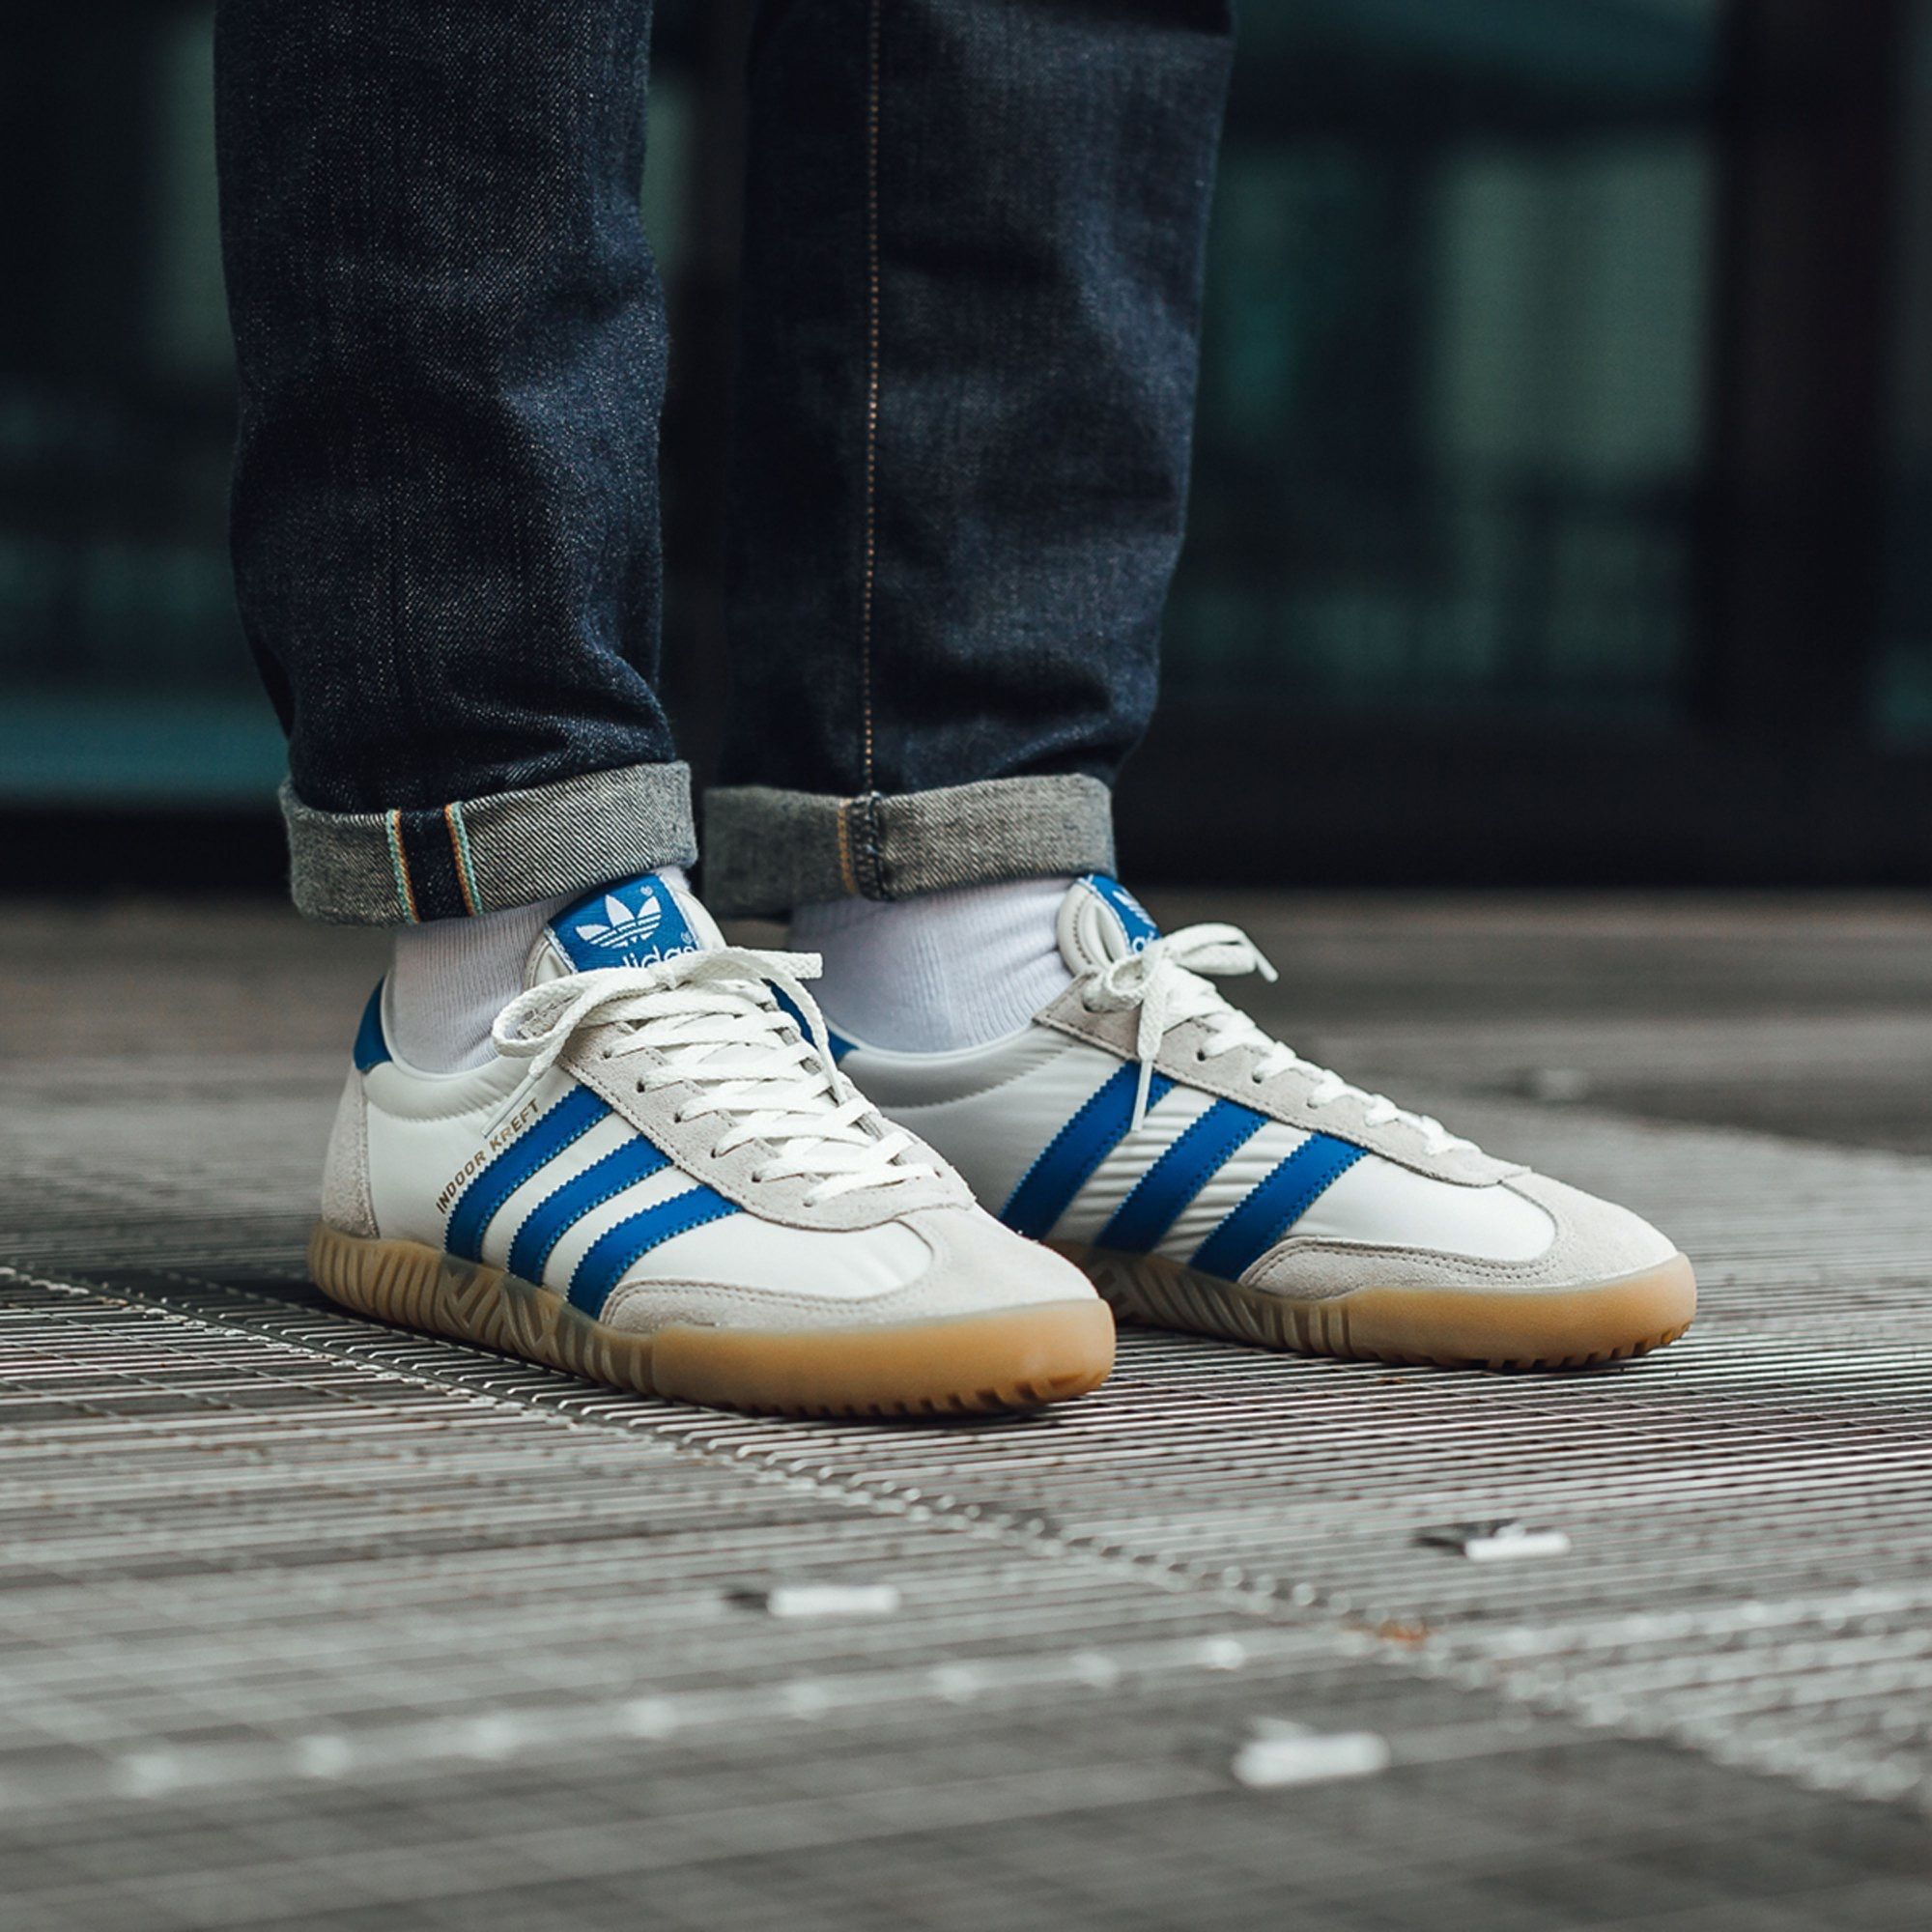 adidas originali in kreft spzl adidas amante pinterest